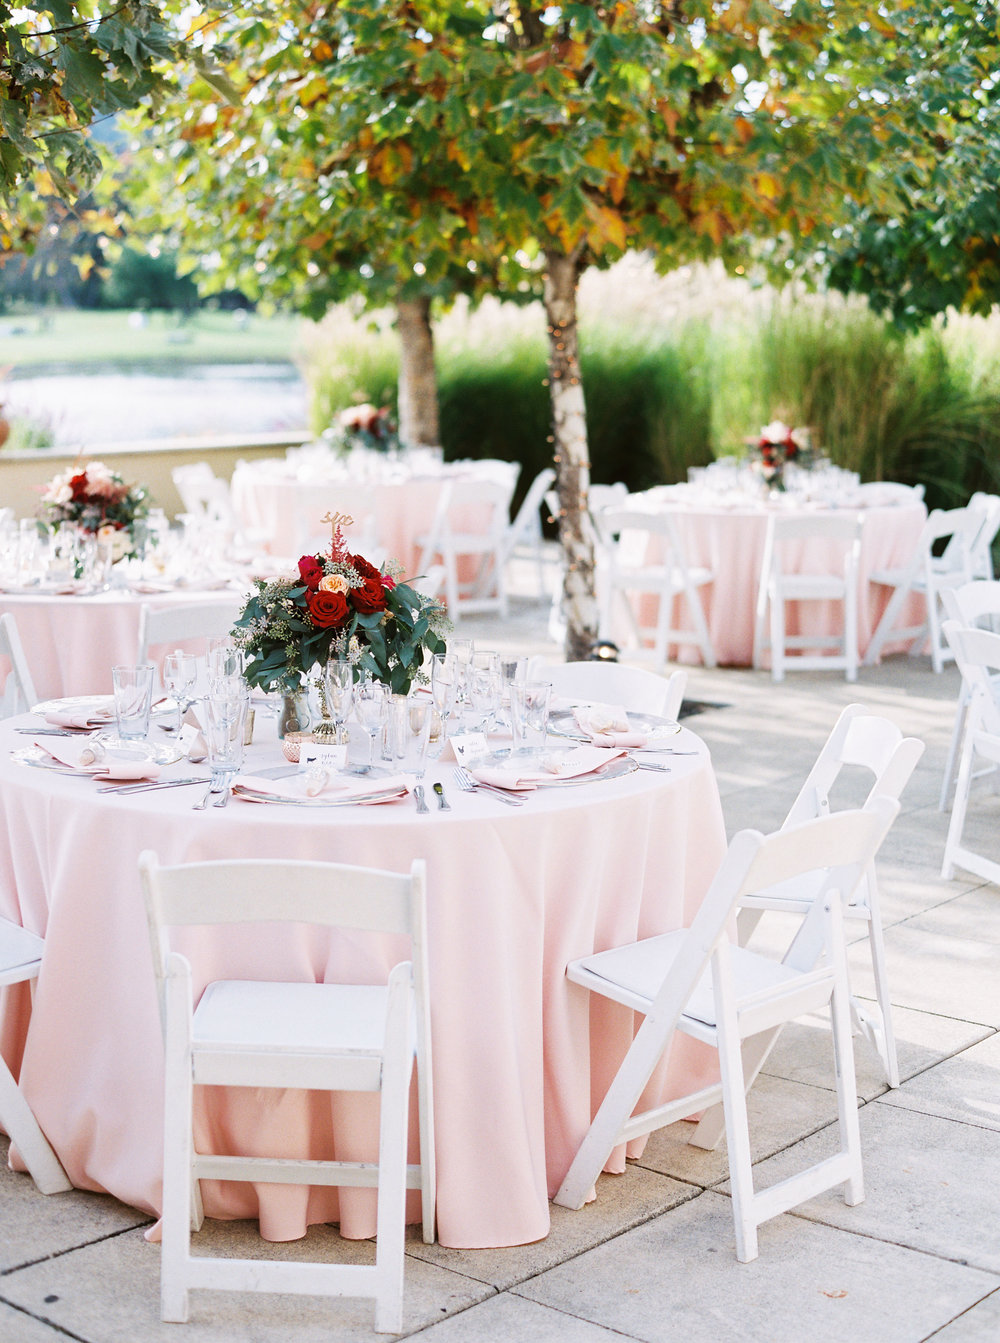 fall-inspired-wedding-at-vitners-golf-club-in-napa-california-32.jpg